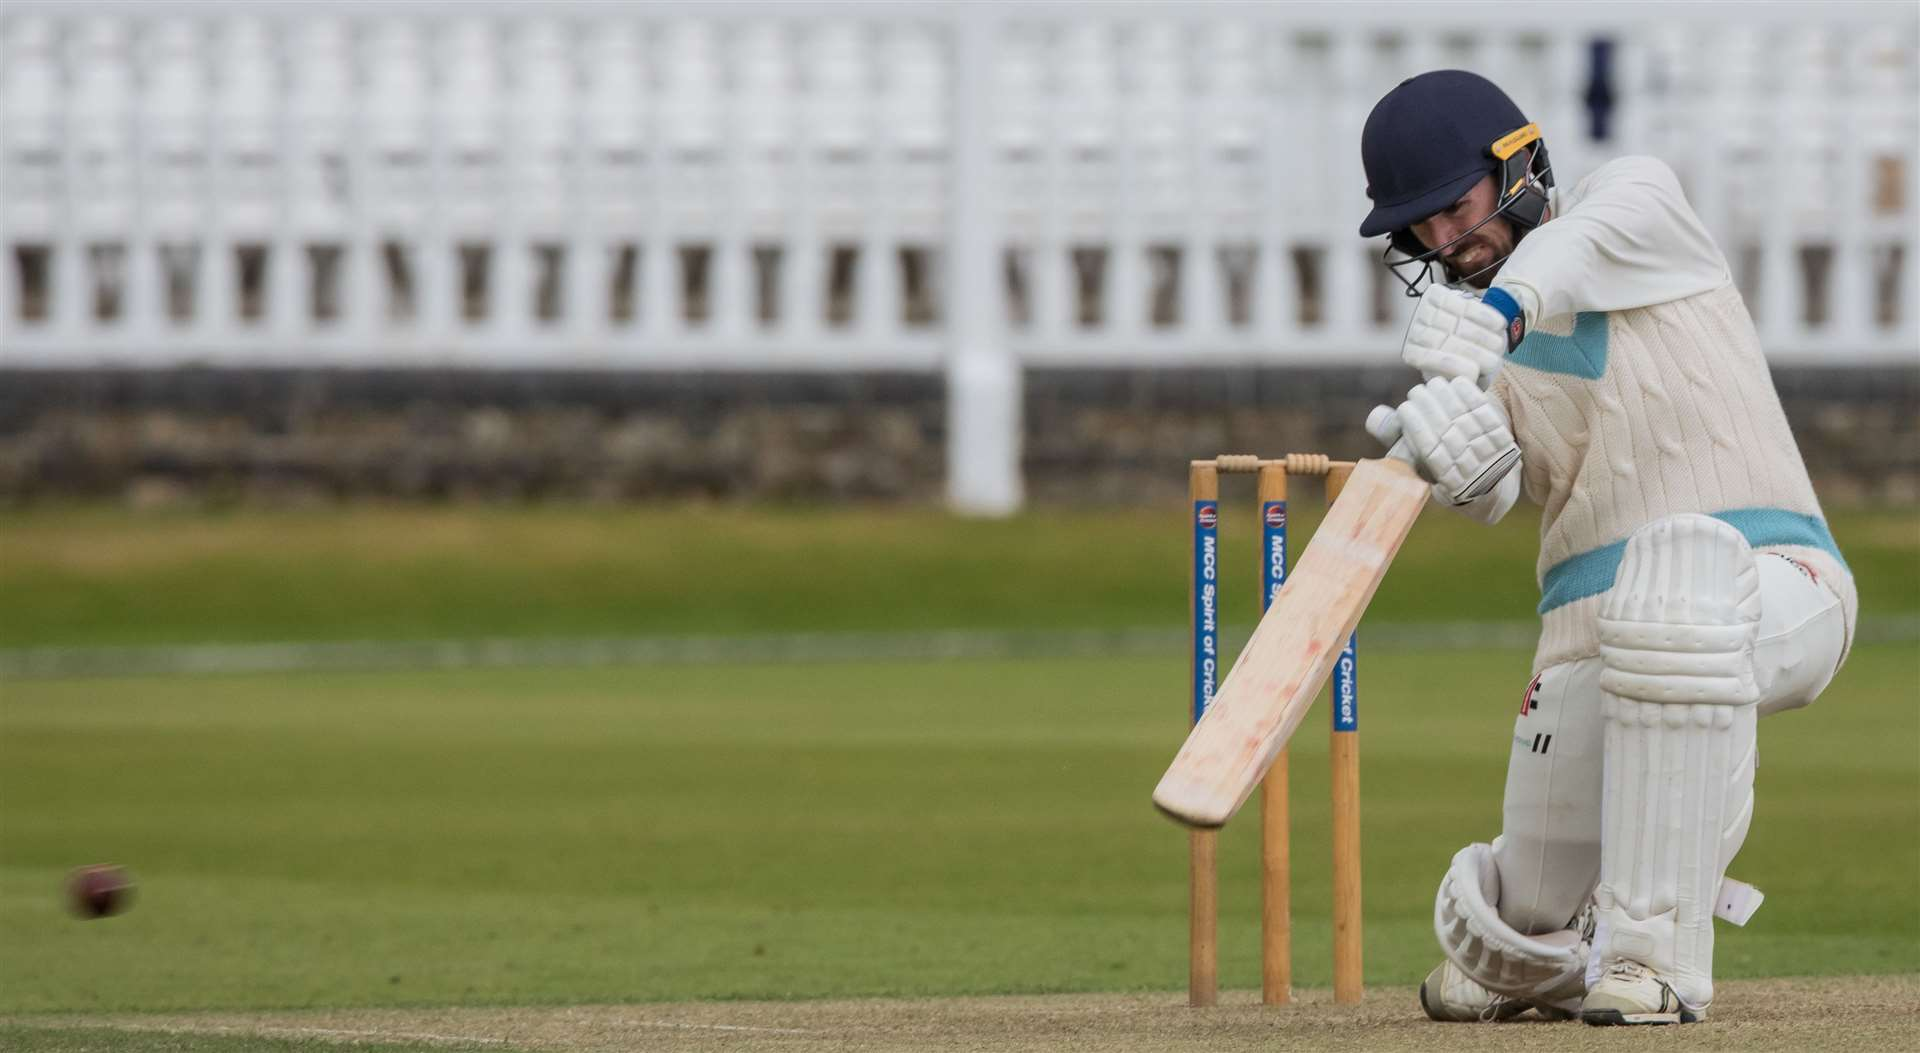 Nick Taylor in action for Cambridge University CC in the Varsity One-Day Match at Lord's. Picture: Mike Harris (26271439)